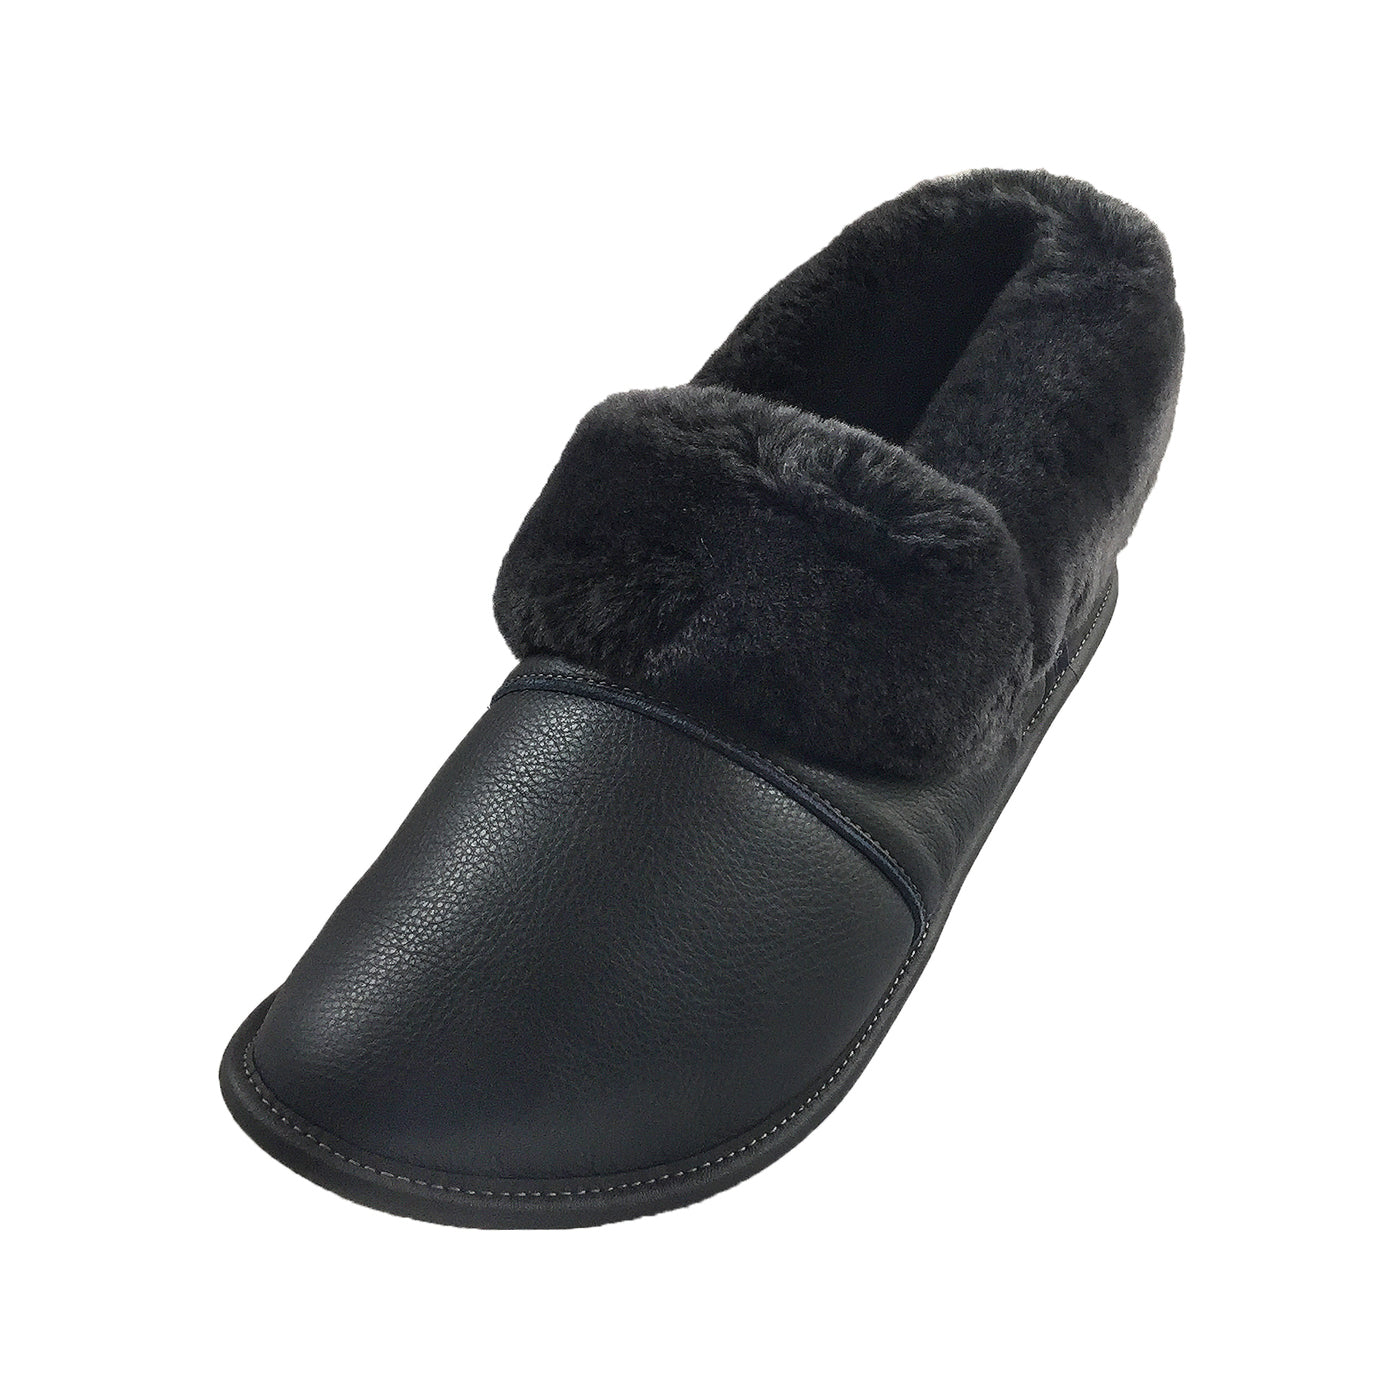 Sheepskin shoes coupons